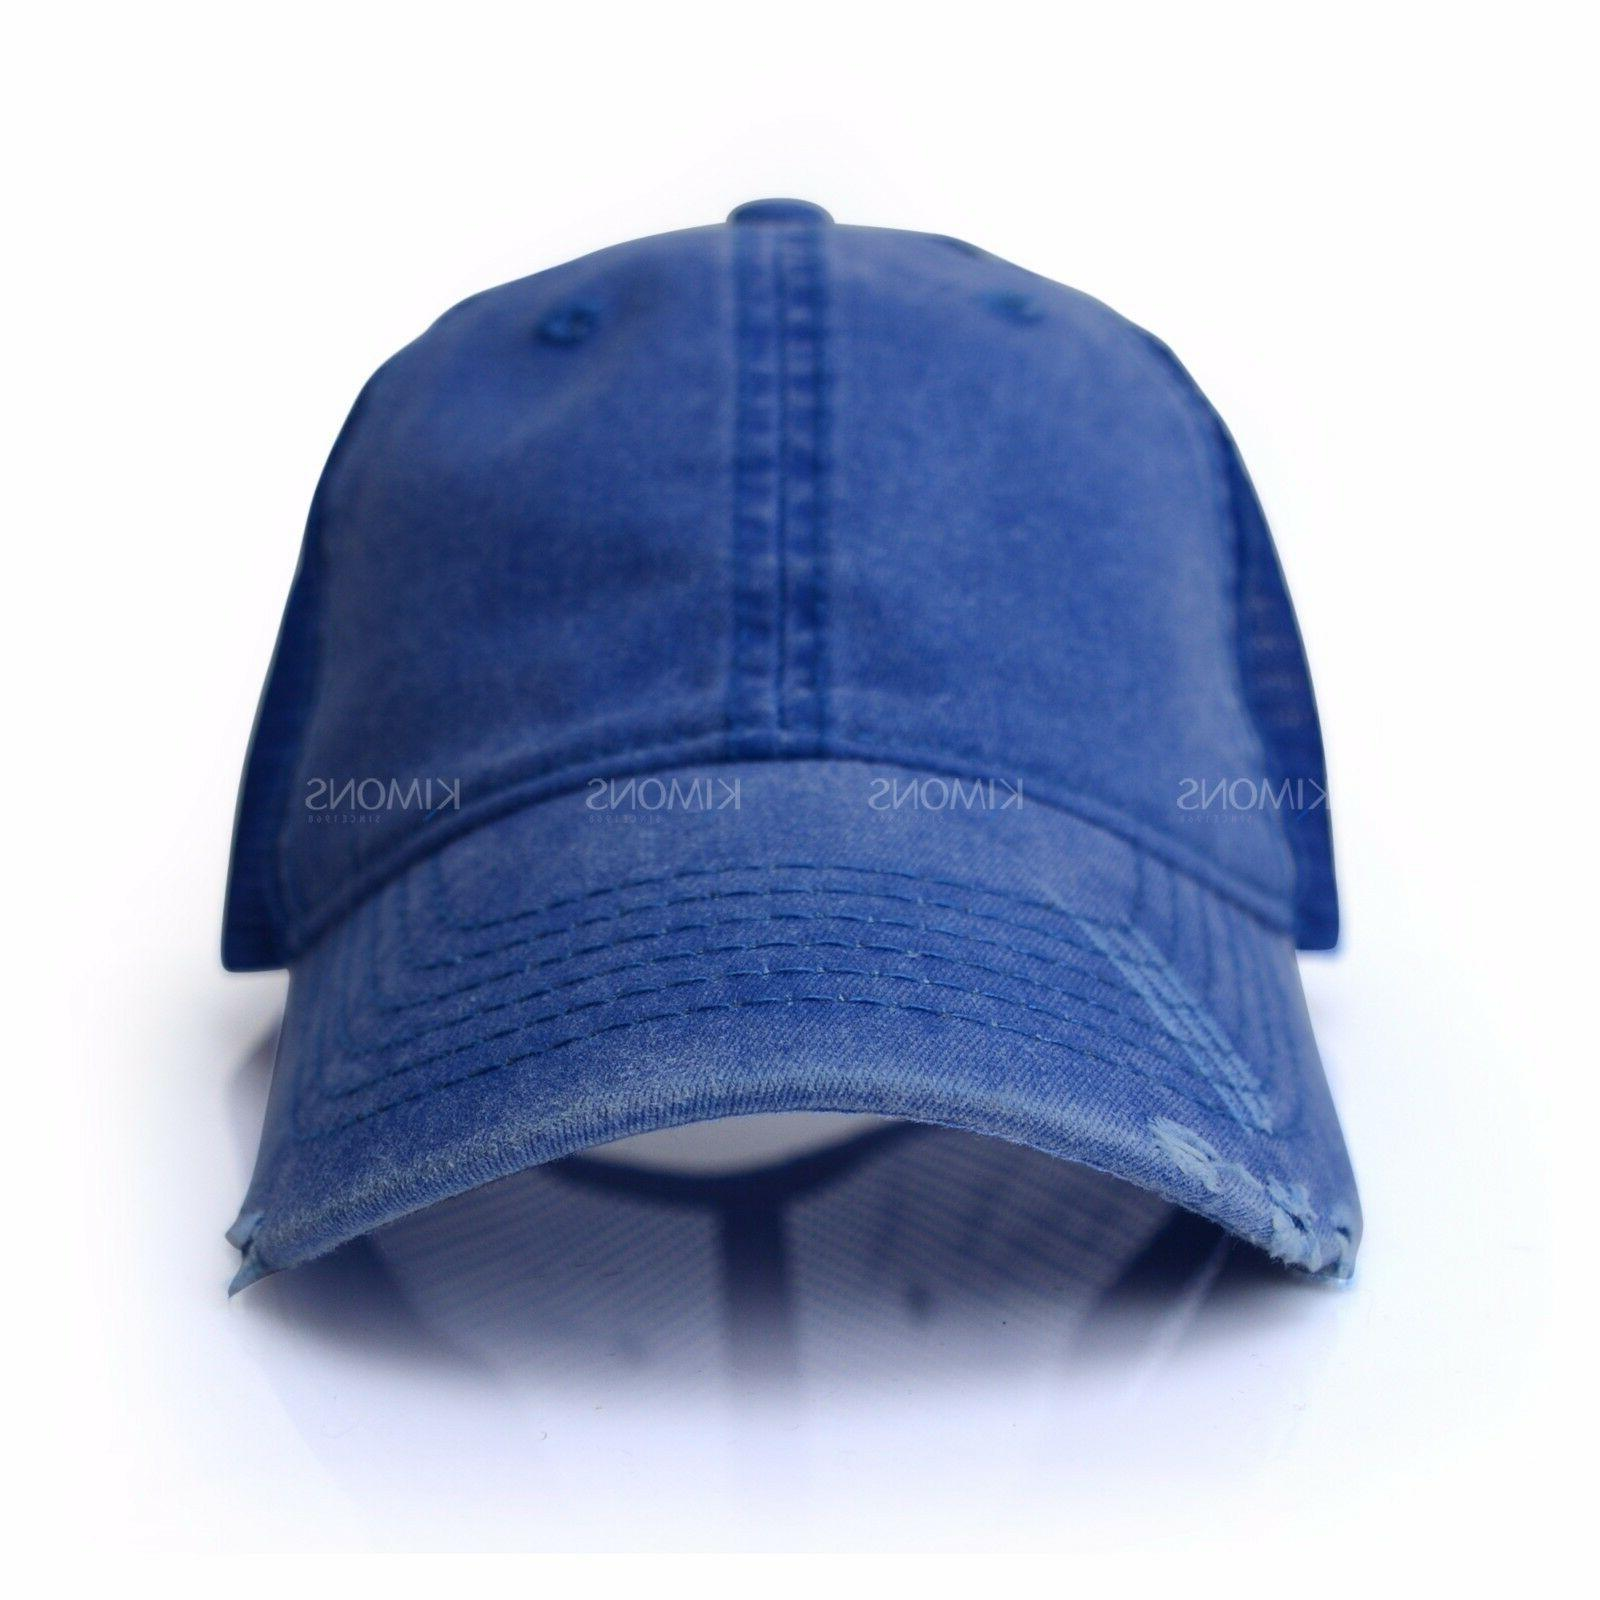 Mesh Trucker Cap Hat Cotton Washed Style Baseball